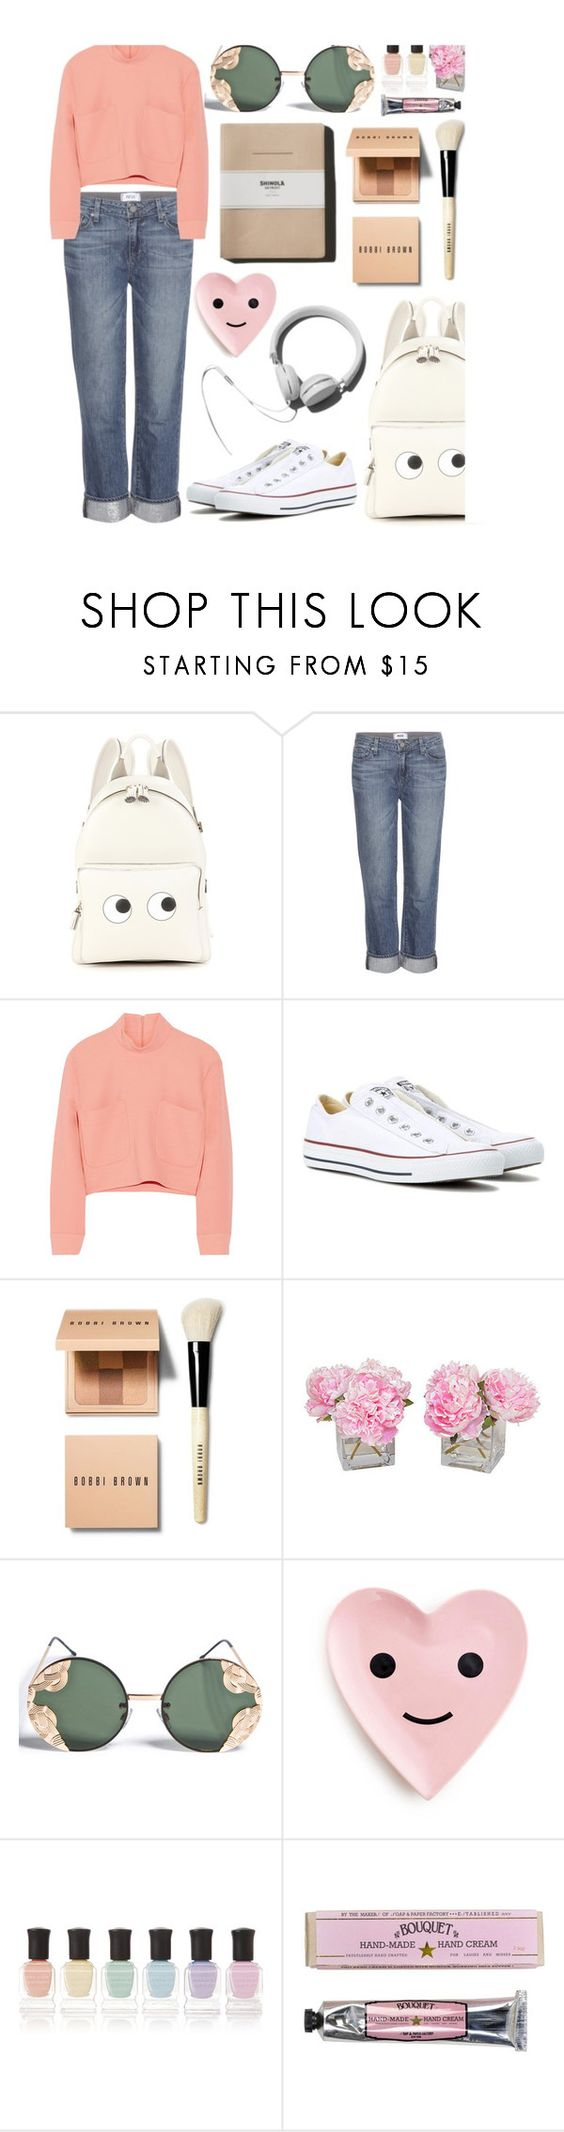 """Untitled #545"" by mlka ❤ liked on Polyvore featuring Anya Hindmarch, Paige Denim, Issa, Converse, Bobbi Brown Cosmetics, The French Bee, Spitfire, Garance Doré, Deborah Lippmann and Soap & Paper Factory"